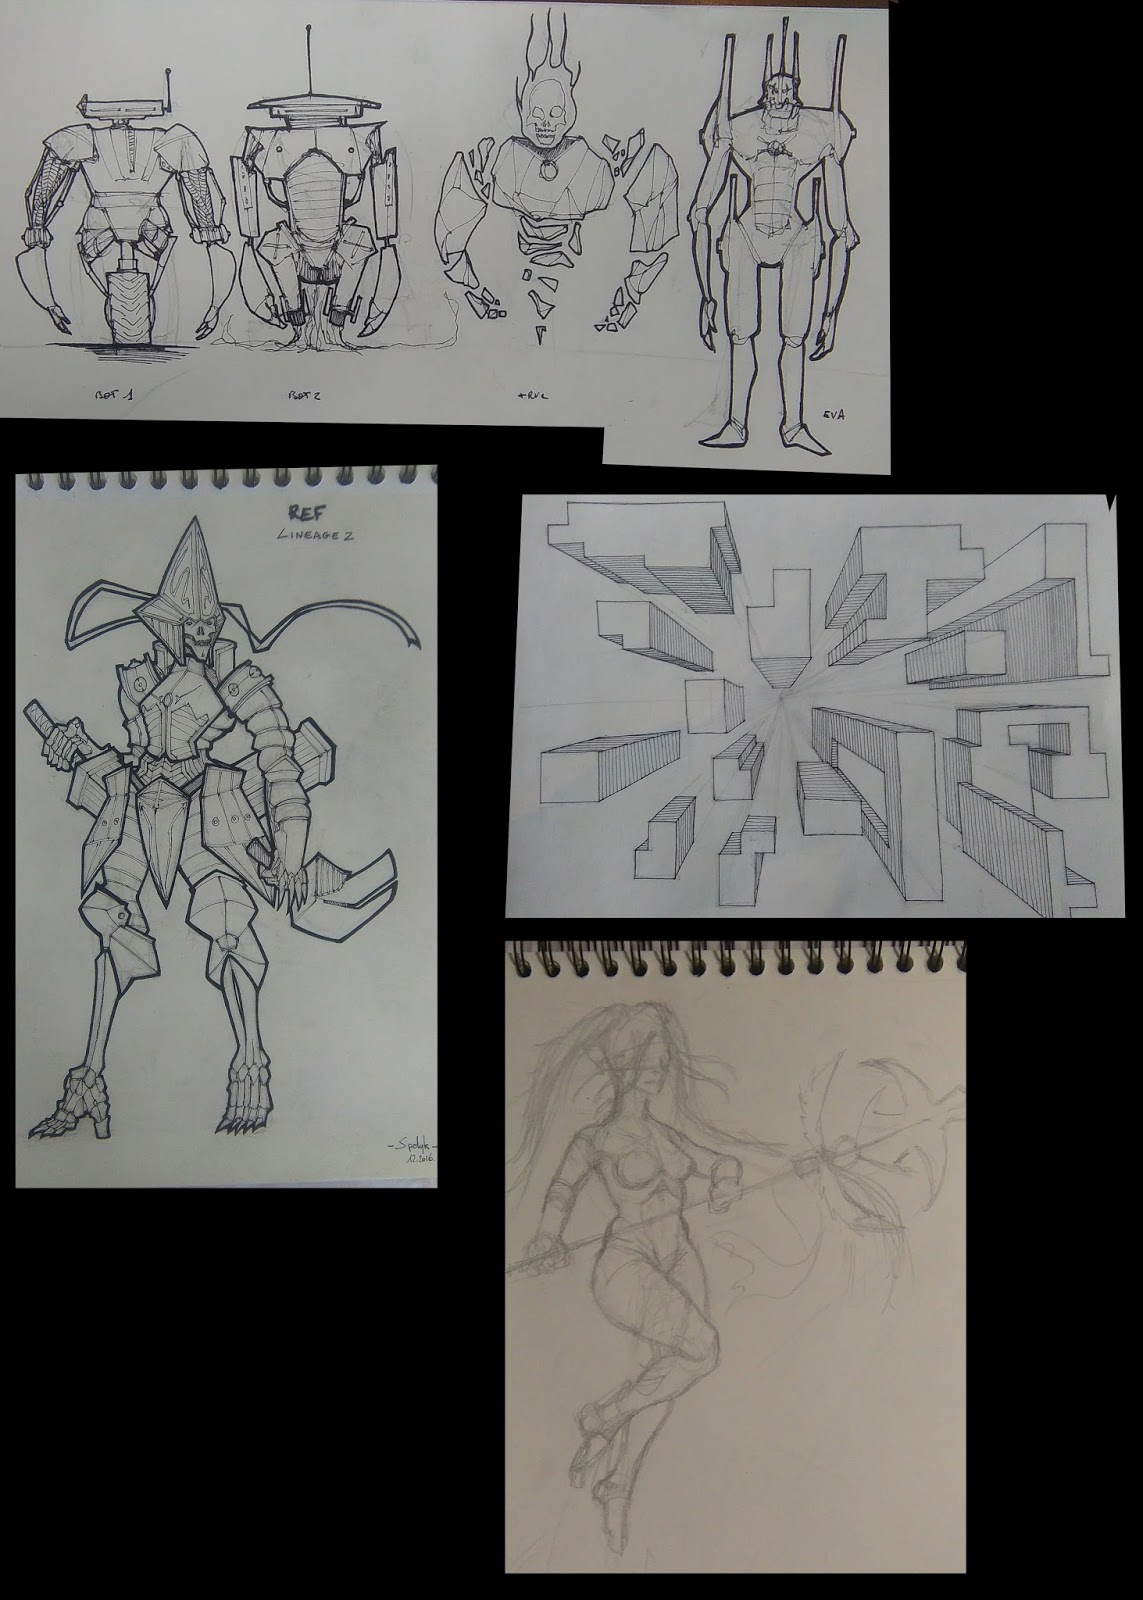 [SPOLYK] - Geometries & sketches - Page 4 R%25C3%25A9sum%25C3%25A9%2B2